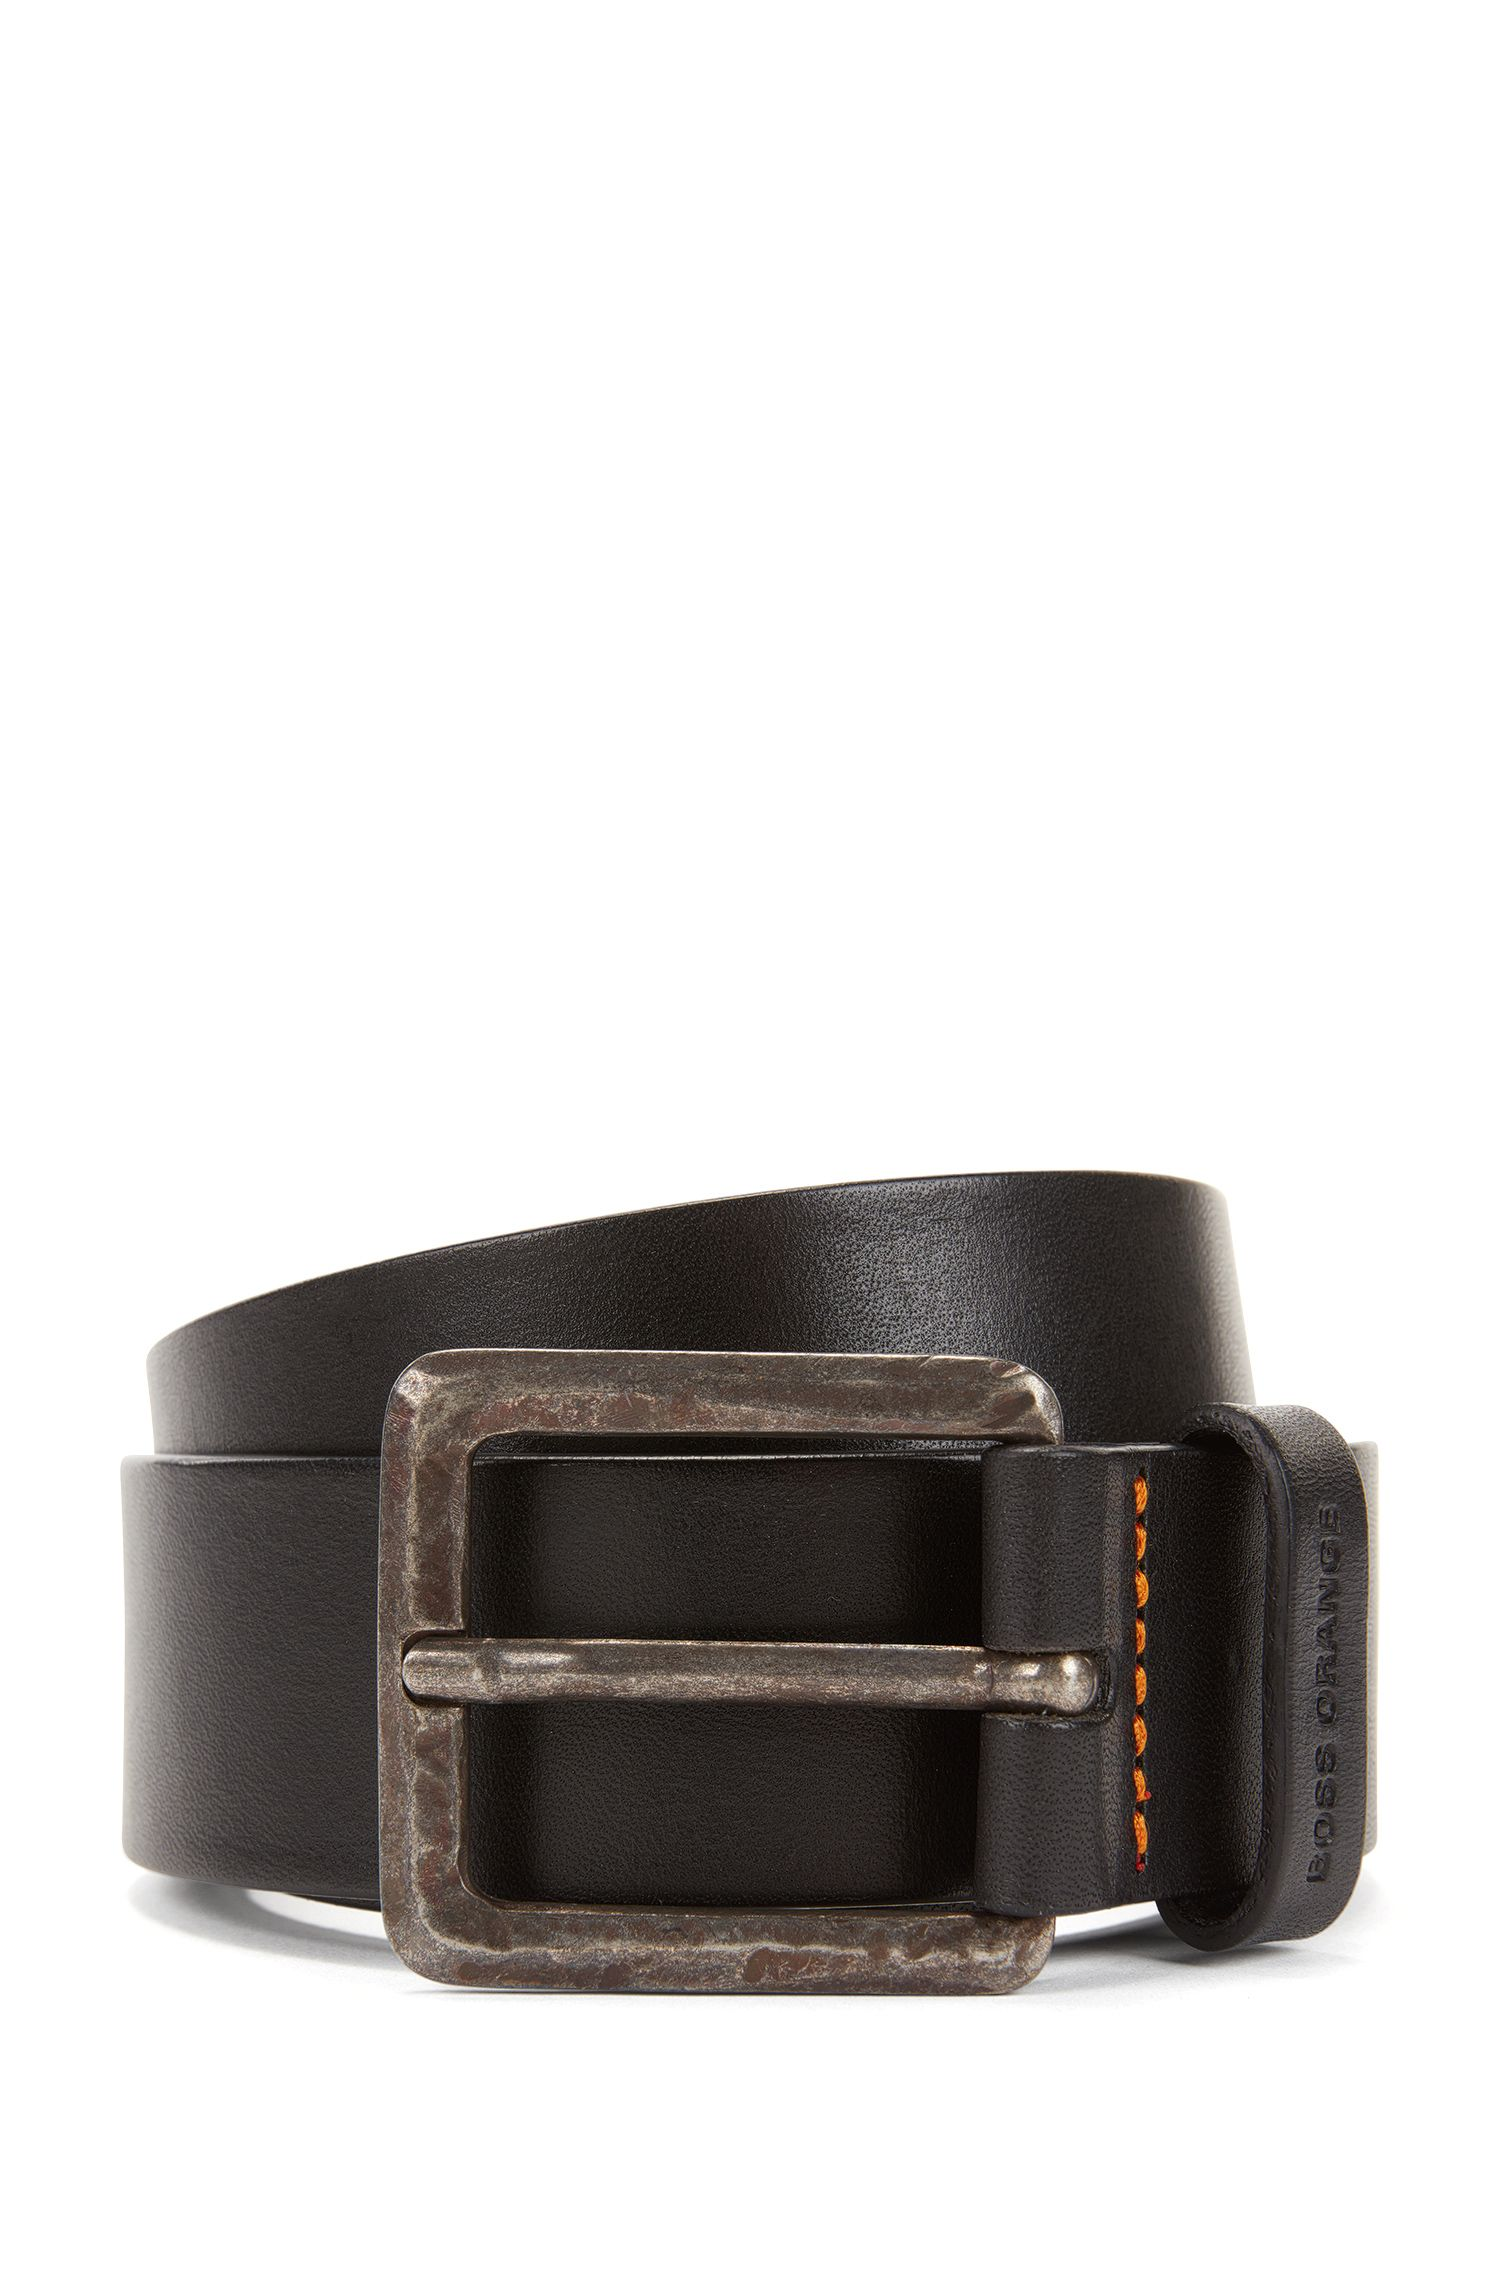 Leather belt with micro perforations